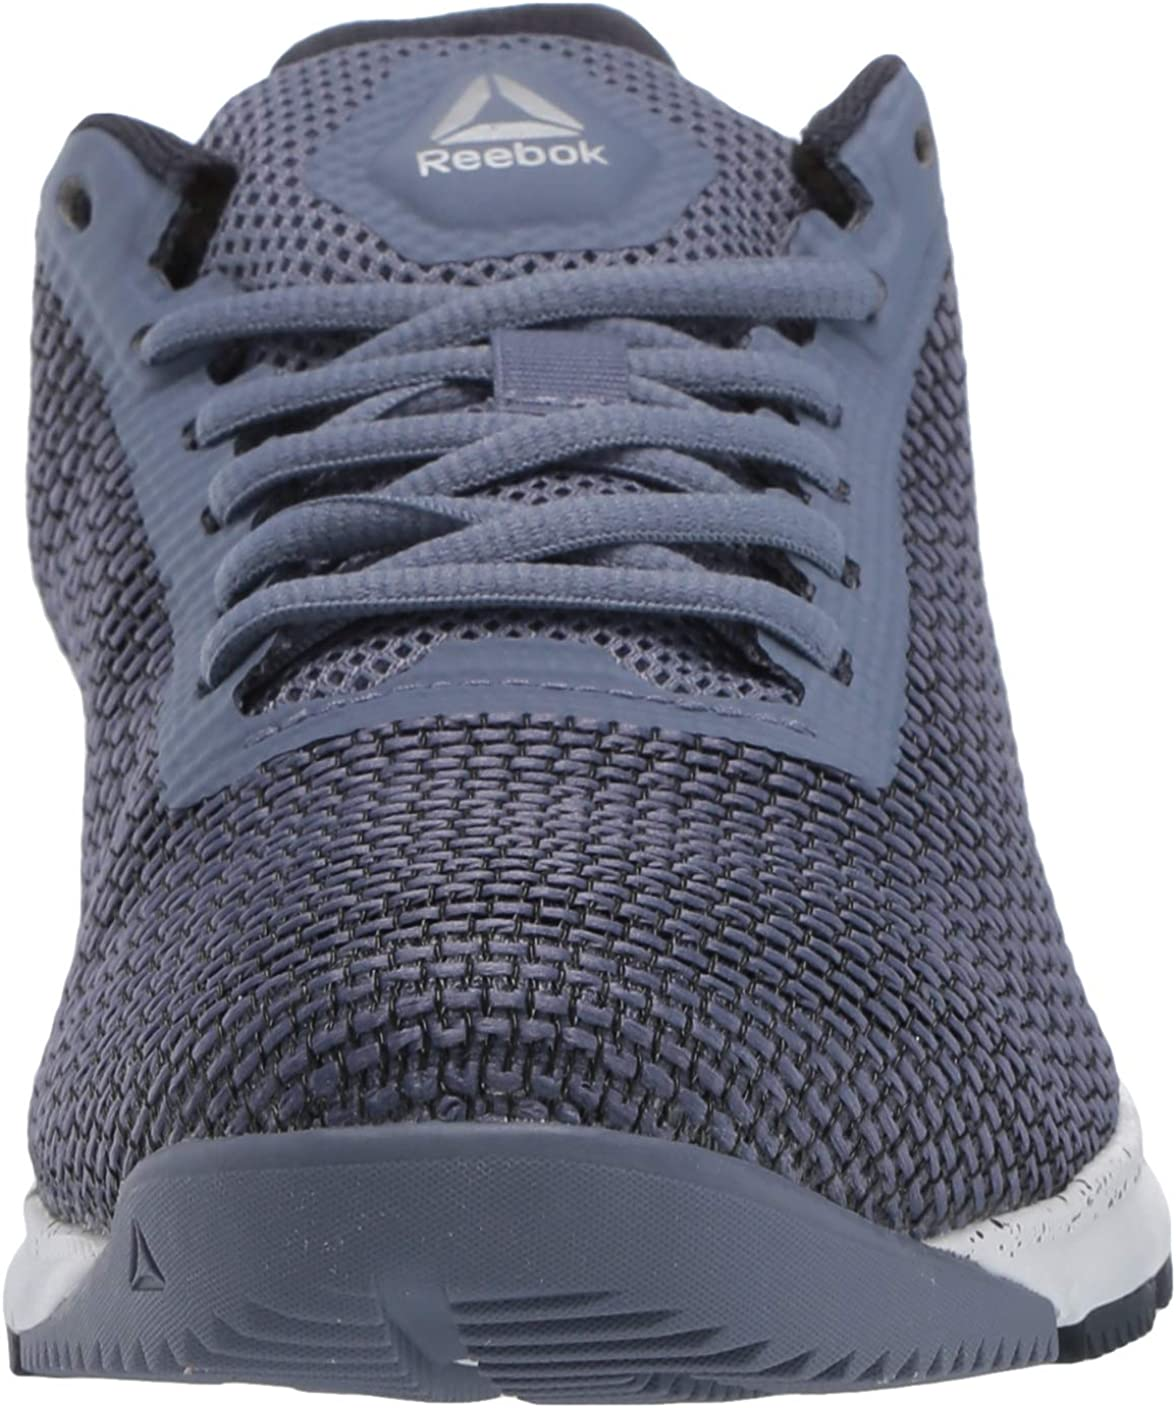 Reebok Women's Speed Tr Flexweave Cross Trainer Heritage Navy/Washed Indigo/White